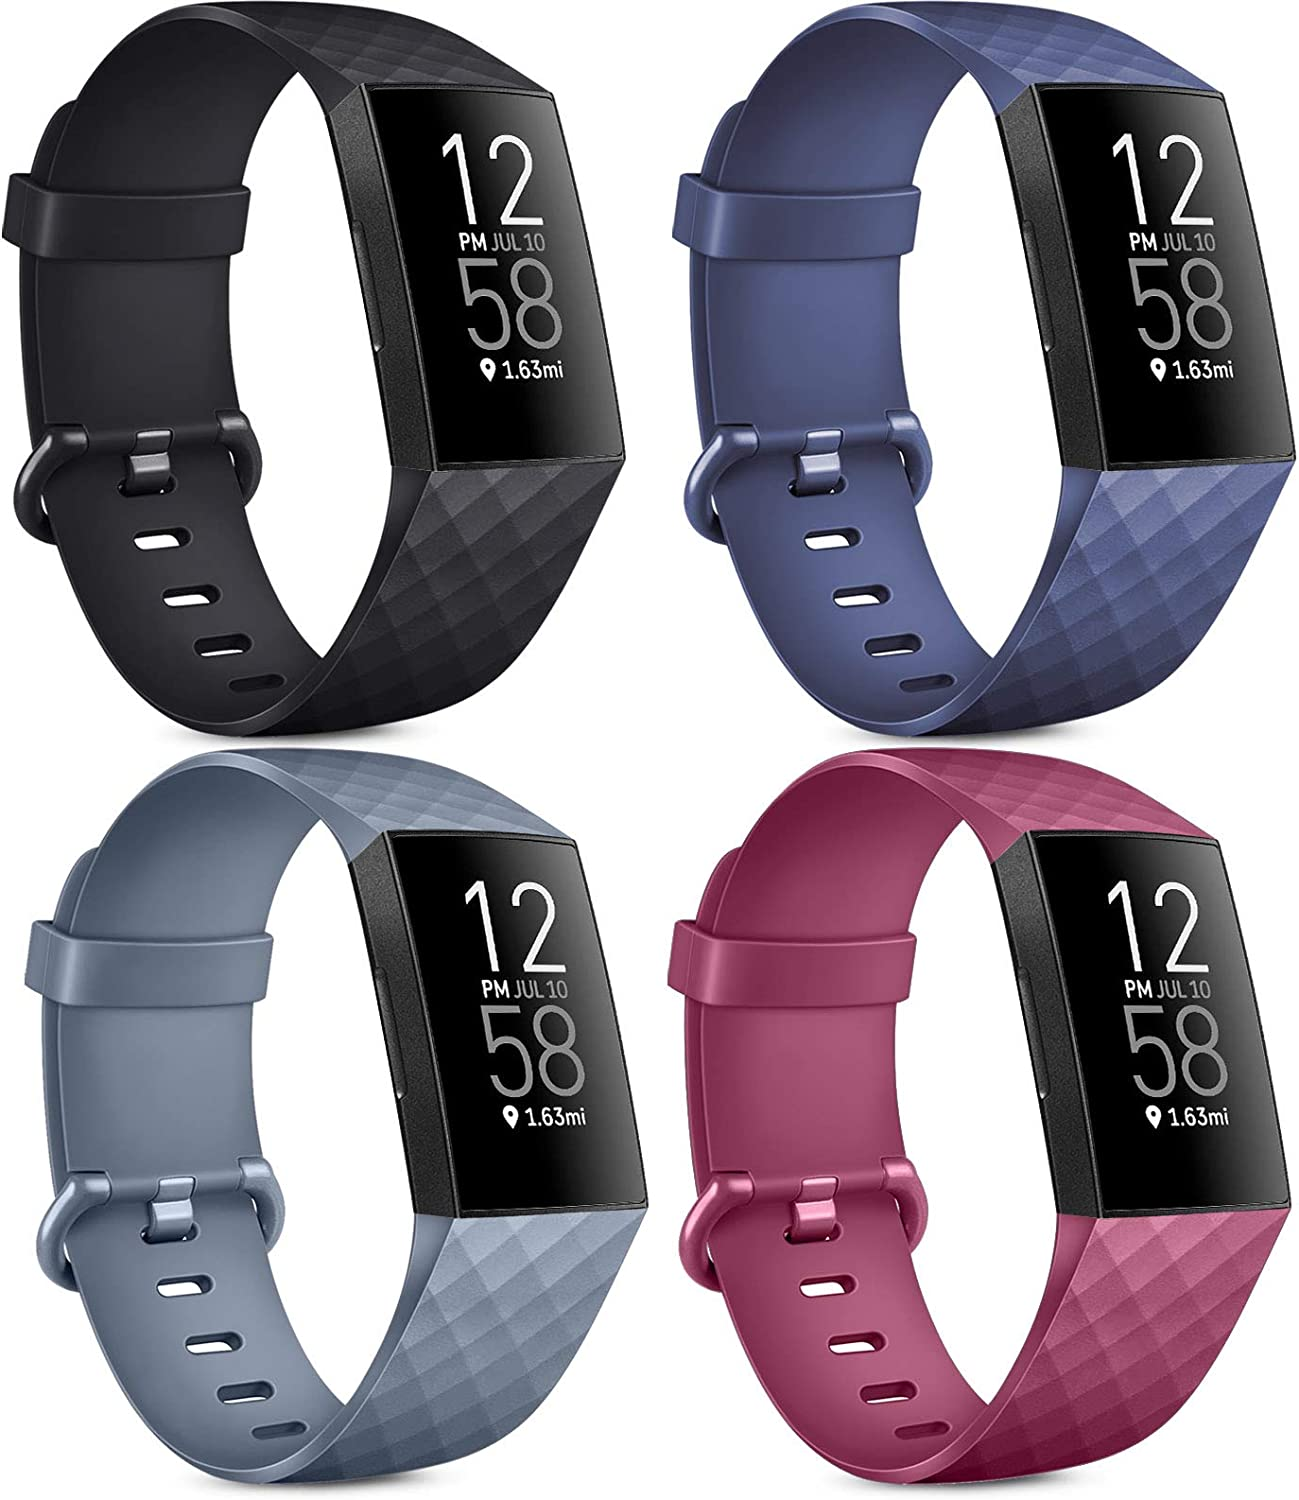 Pack 4 Silicone Bands for Fitbit Charge 4 / Fitbit Charge 3 / Charge 3 SE Soft WaterproofReplacement Wristbands for Women Men (No Tracker)(Small,Black+Blue+Blue Grey+Wine Red)